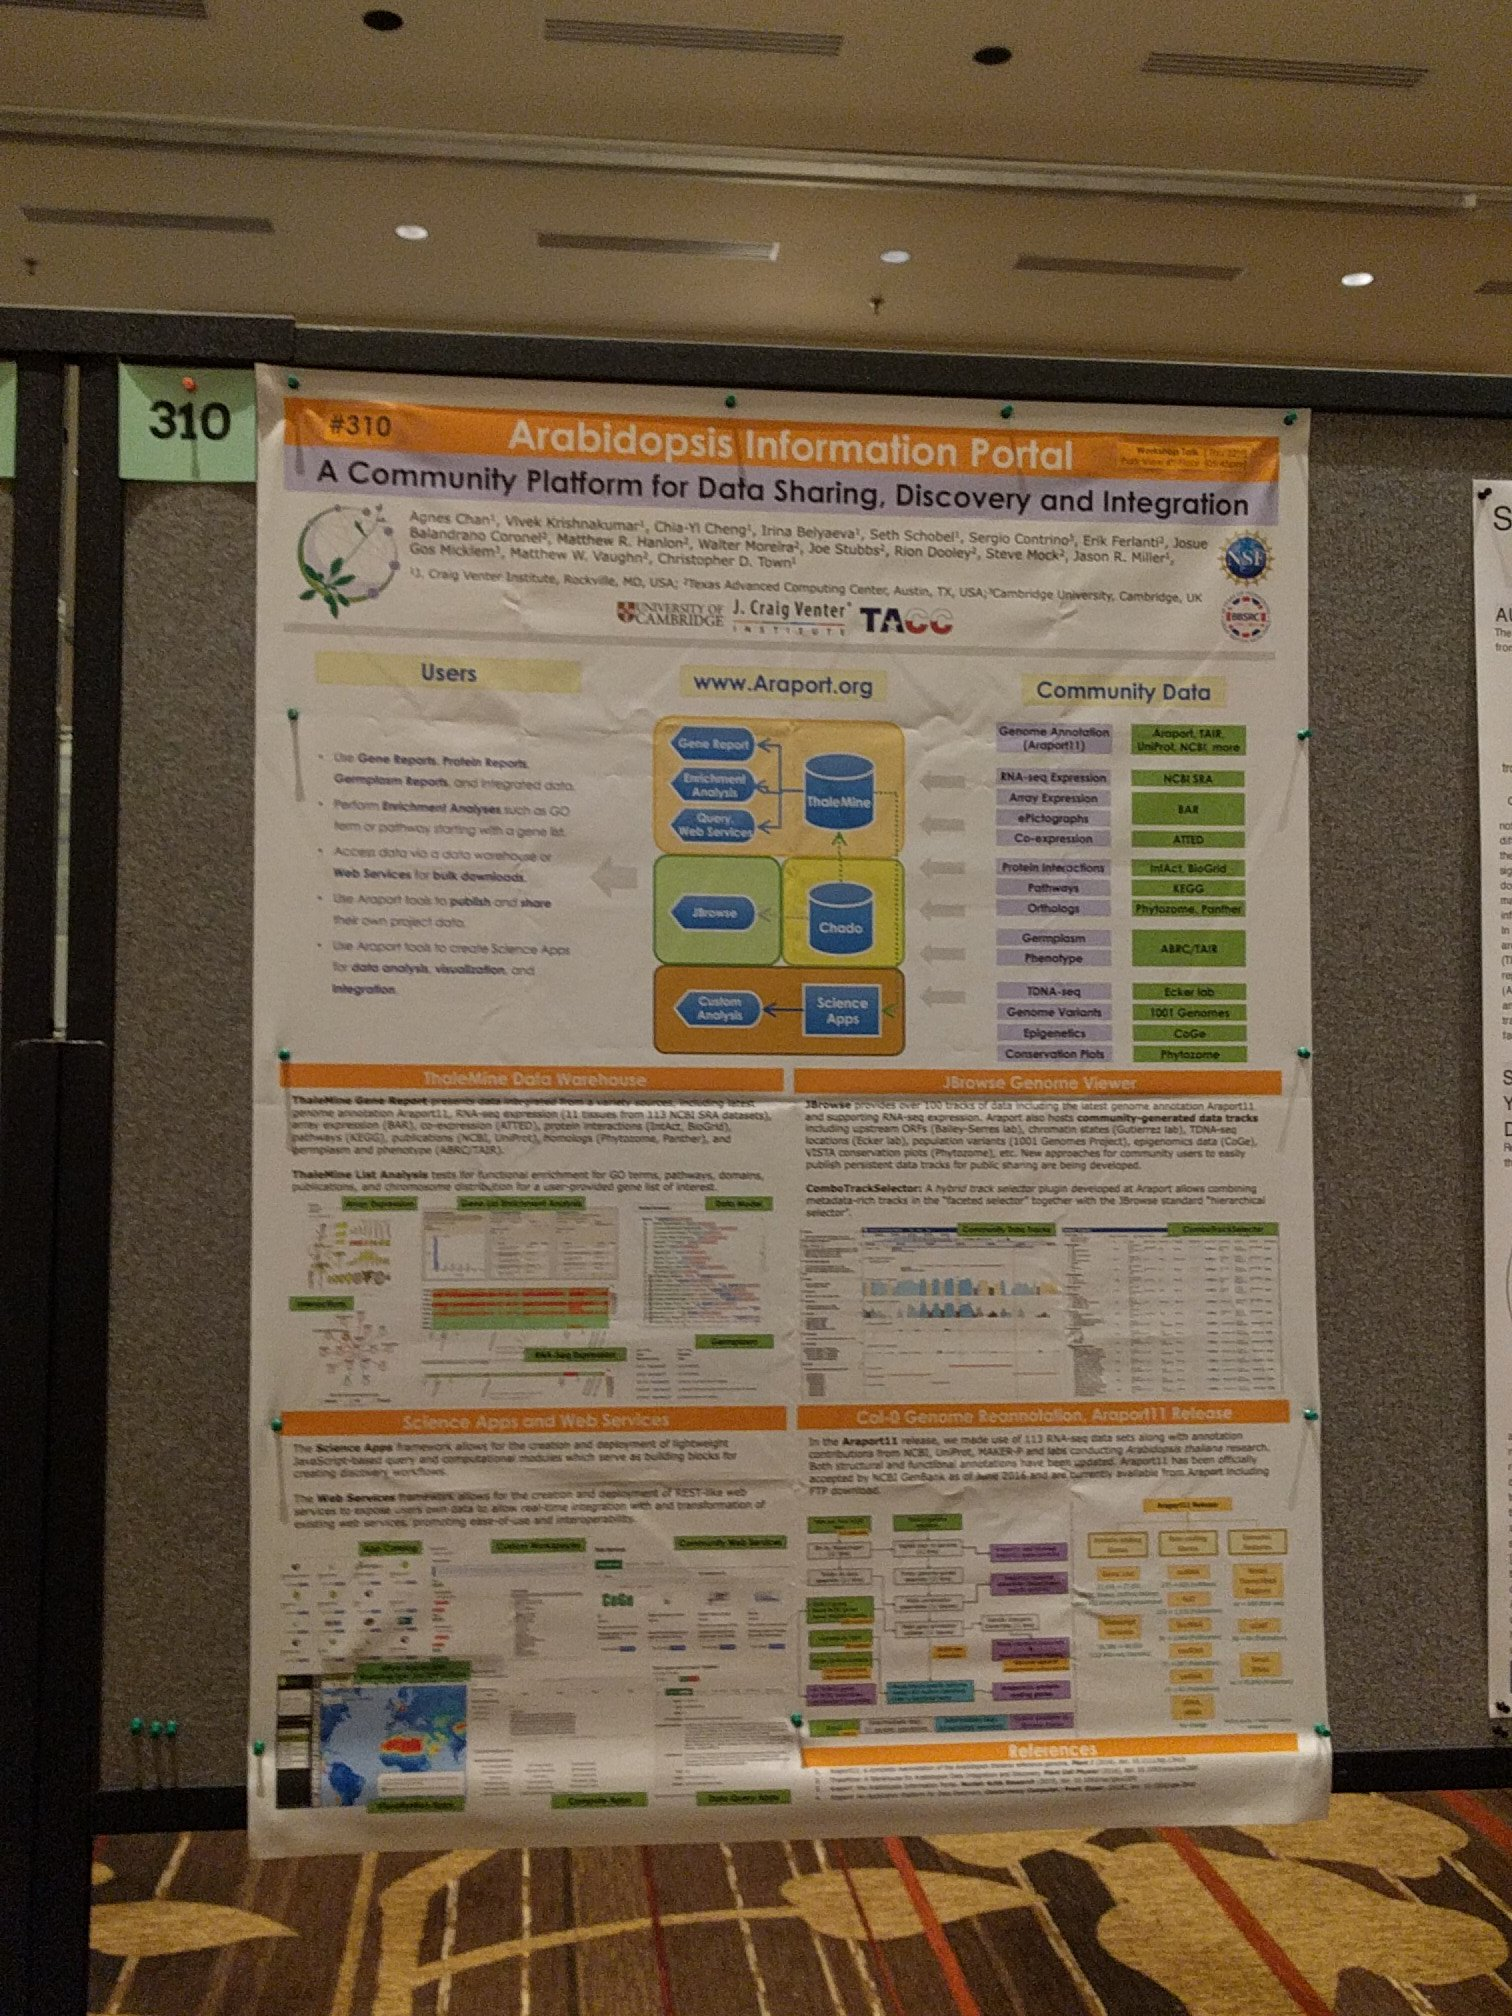 @Araport poster (#310) is up in the Grand Ballroom. Come check it out! #bioinformatics #databases #ICAR2017 https://t.co/apbk7r0D7q